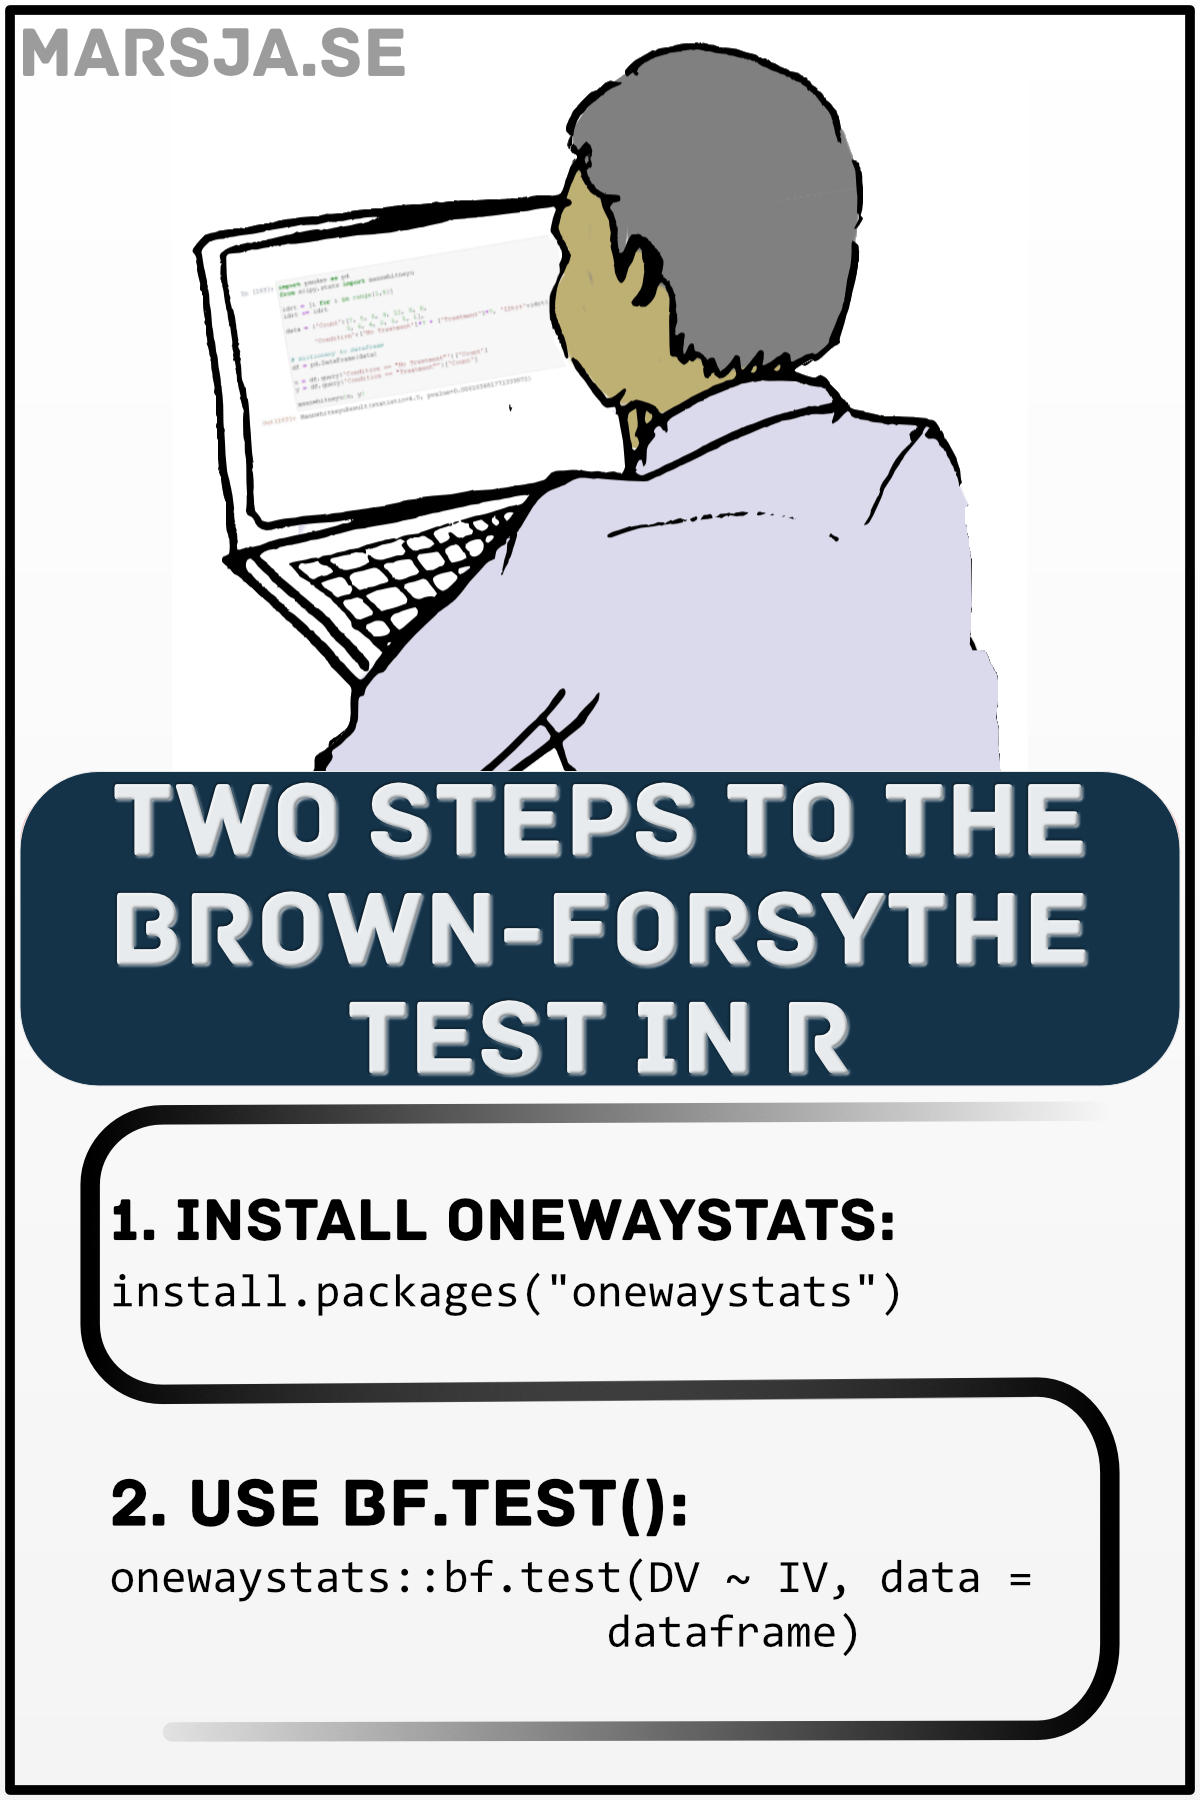 brown forsythe test in R: two steps